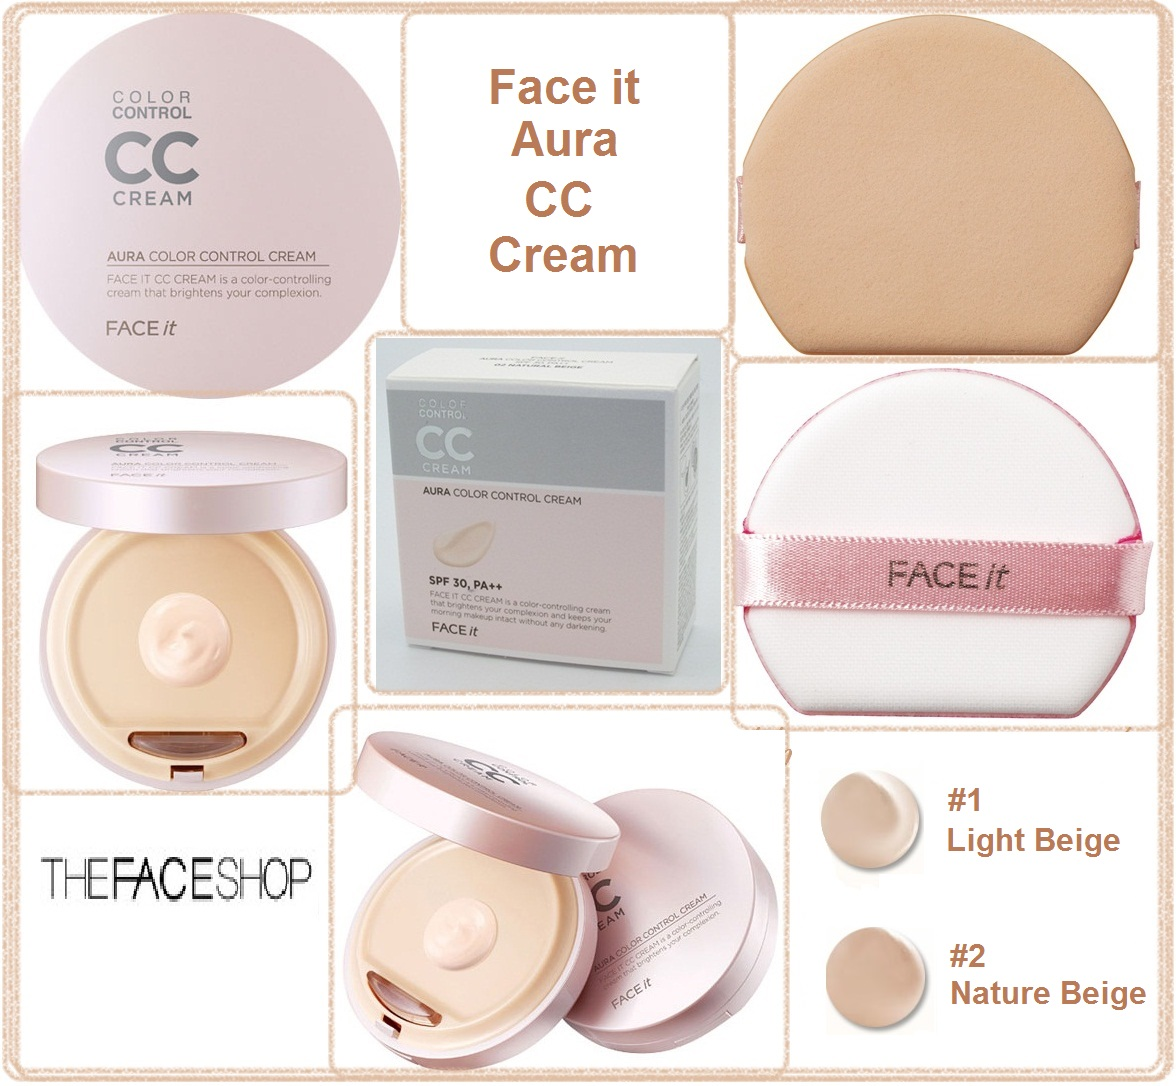 phan nuoc the face shop